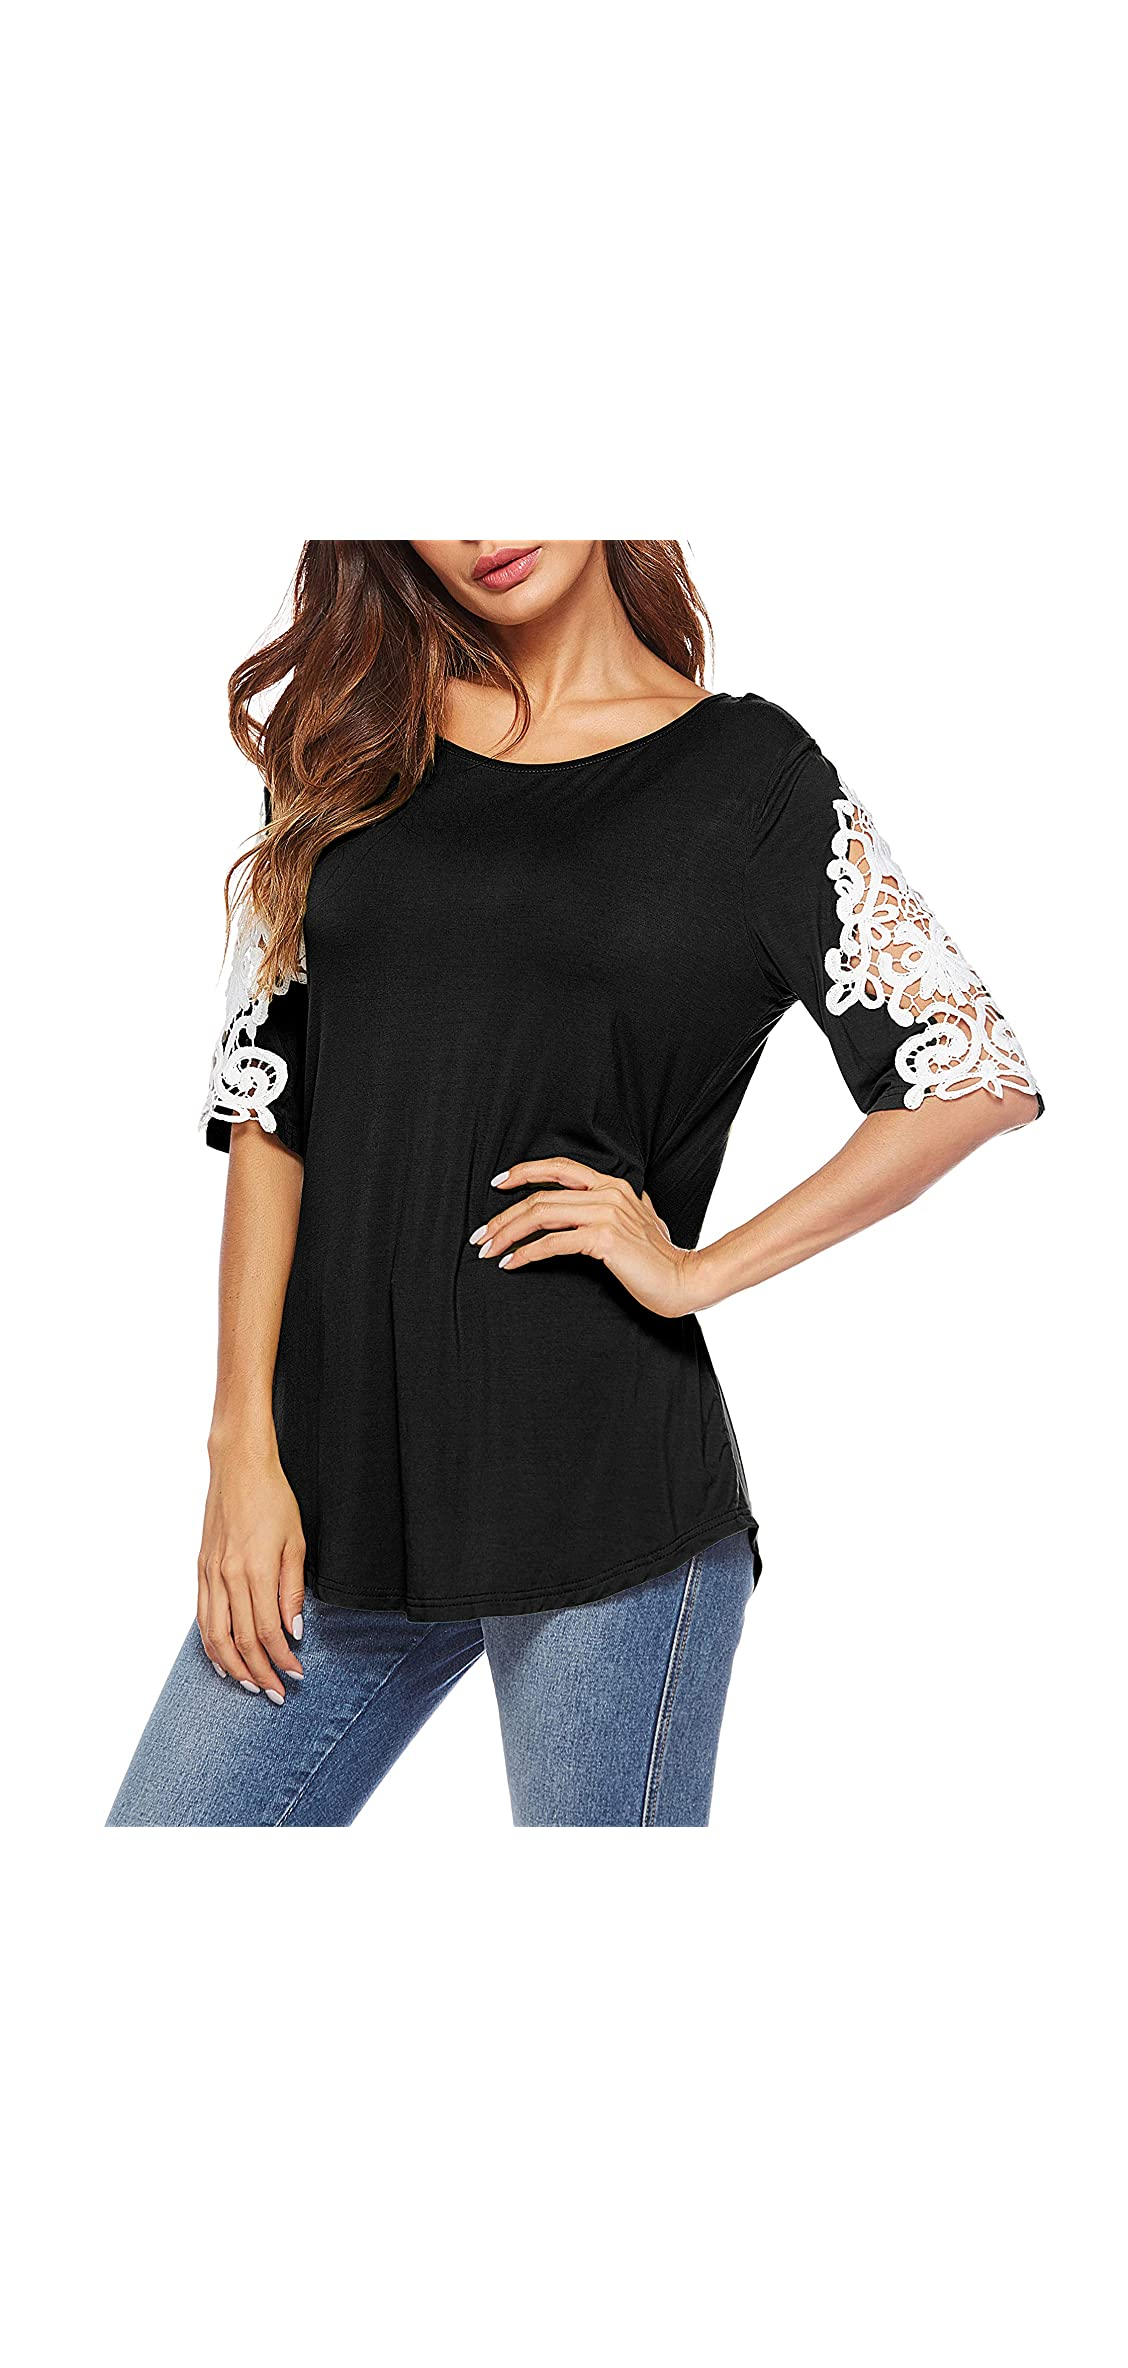 Womens Shirts Casual Tee Round Neck Short Sleeve Lace